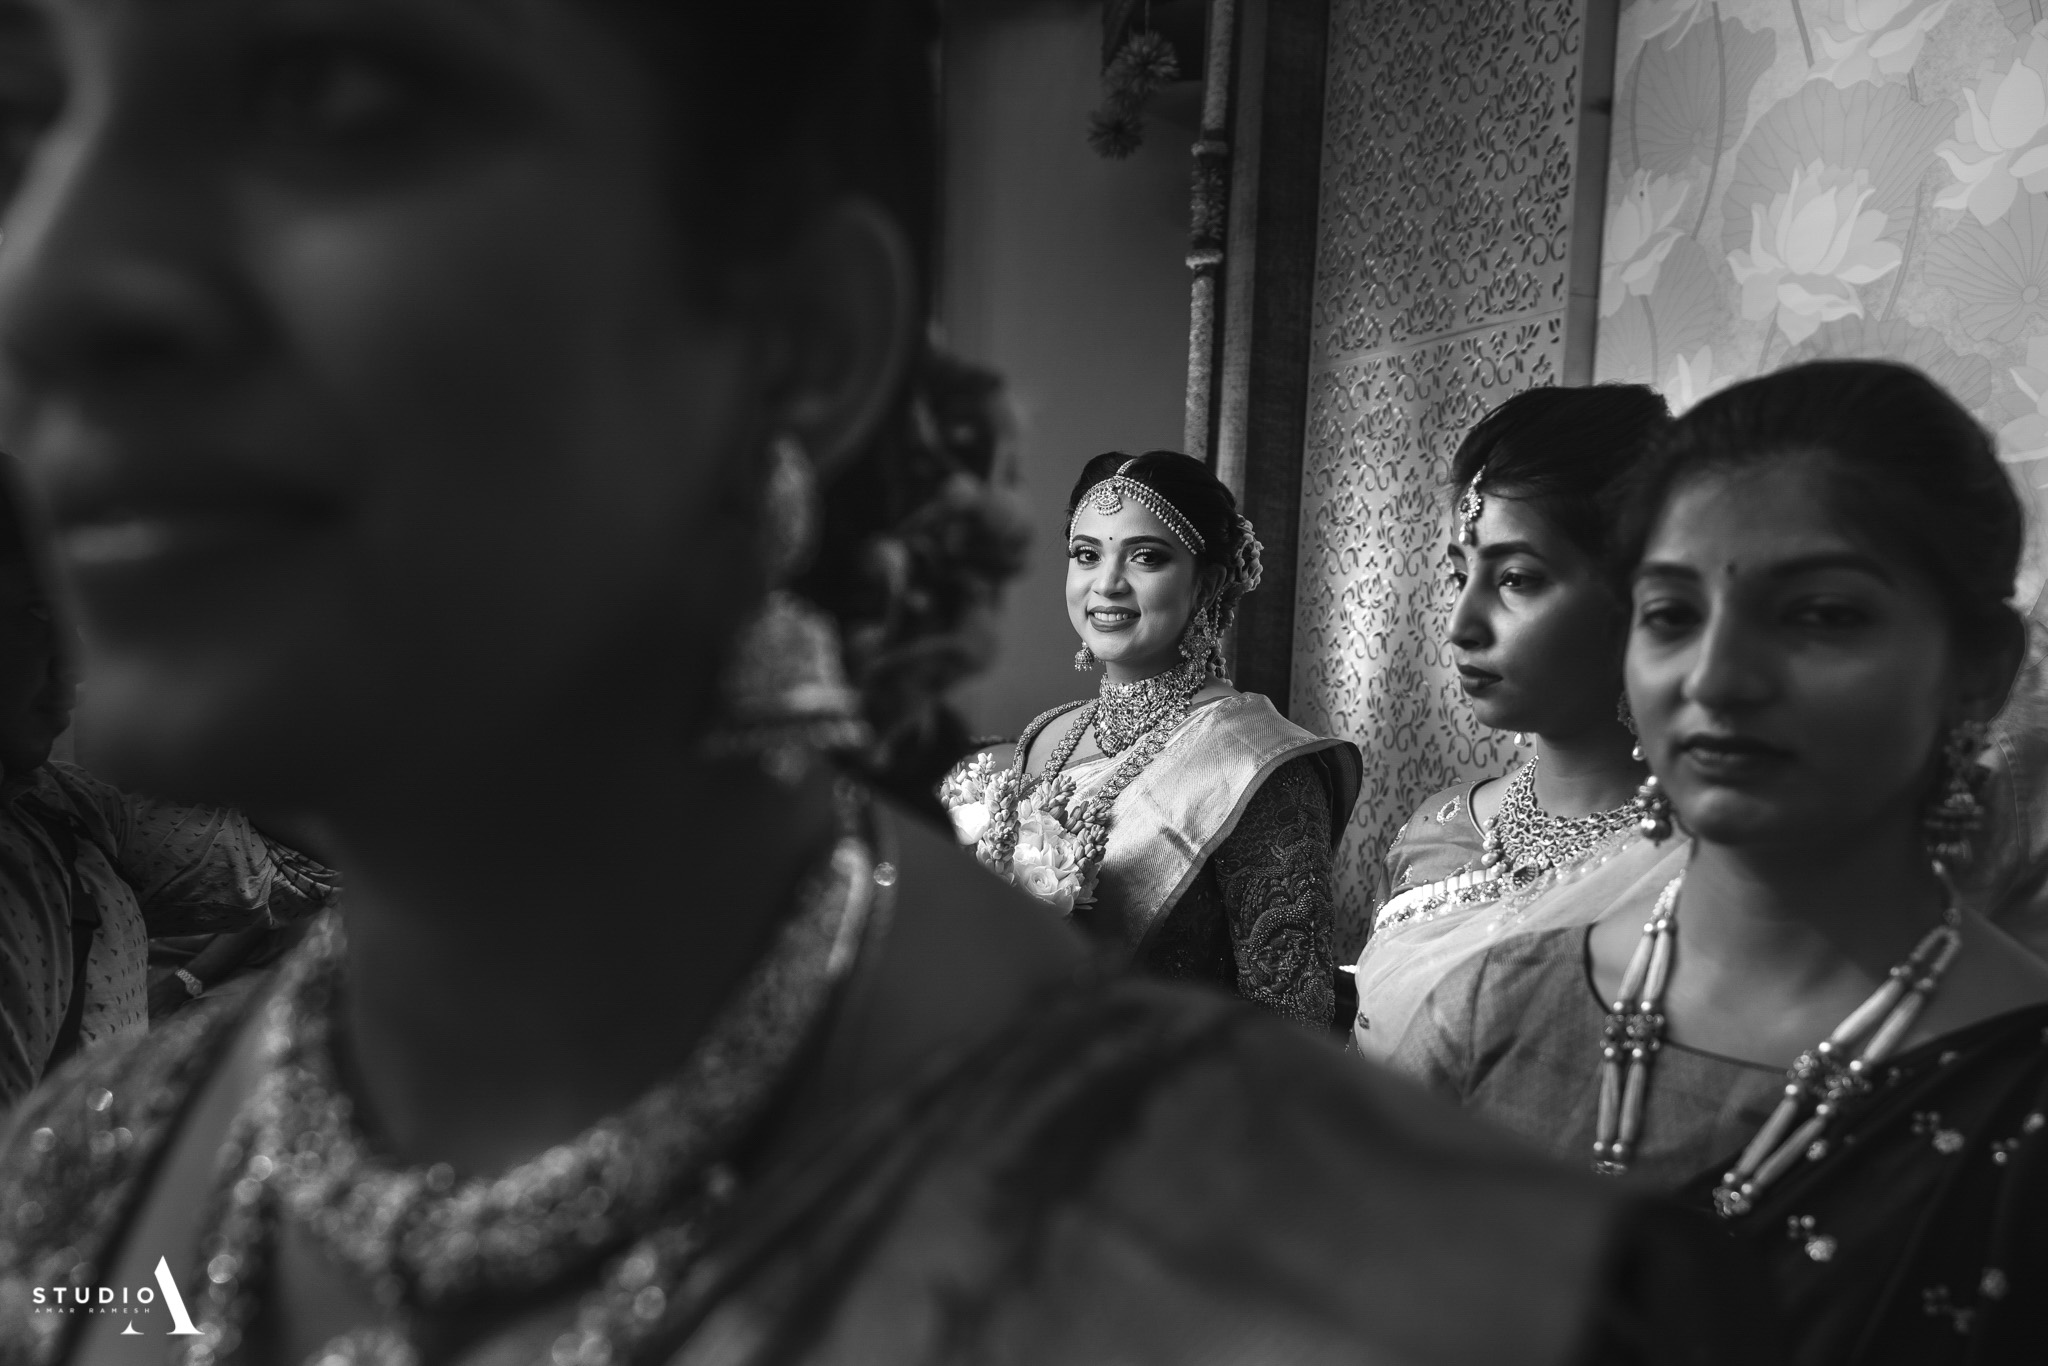 best-candid-wedding-photography-studioa-chennai-8